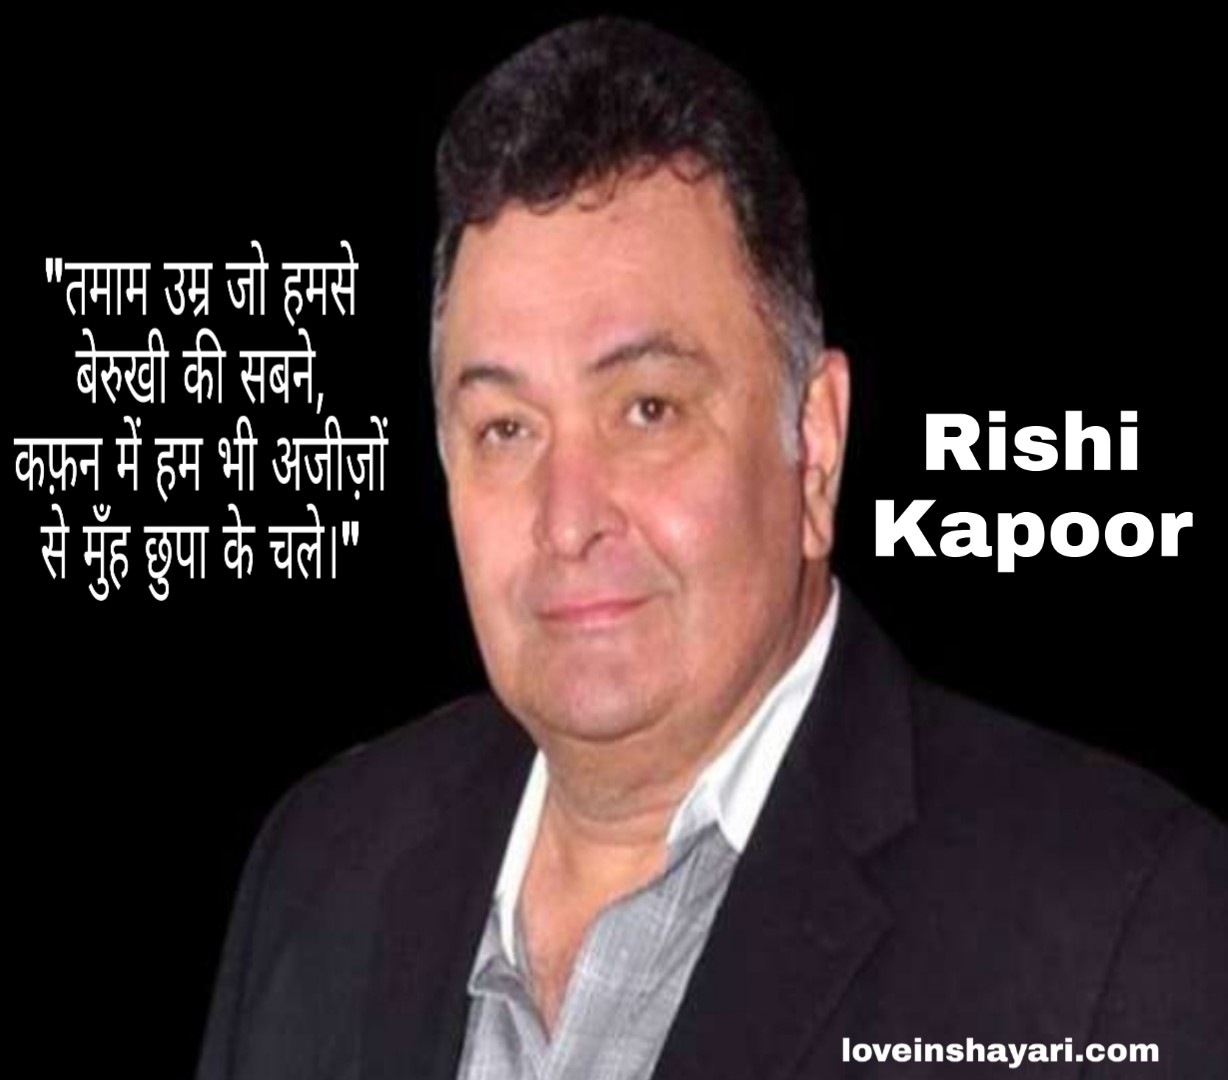 Photo of Rishi Kapoor status whatsapp status 2020